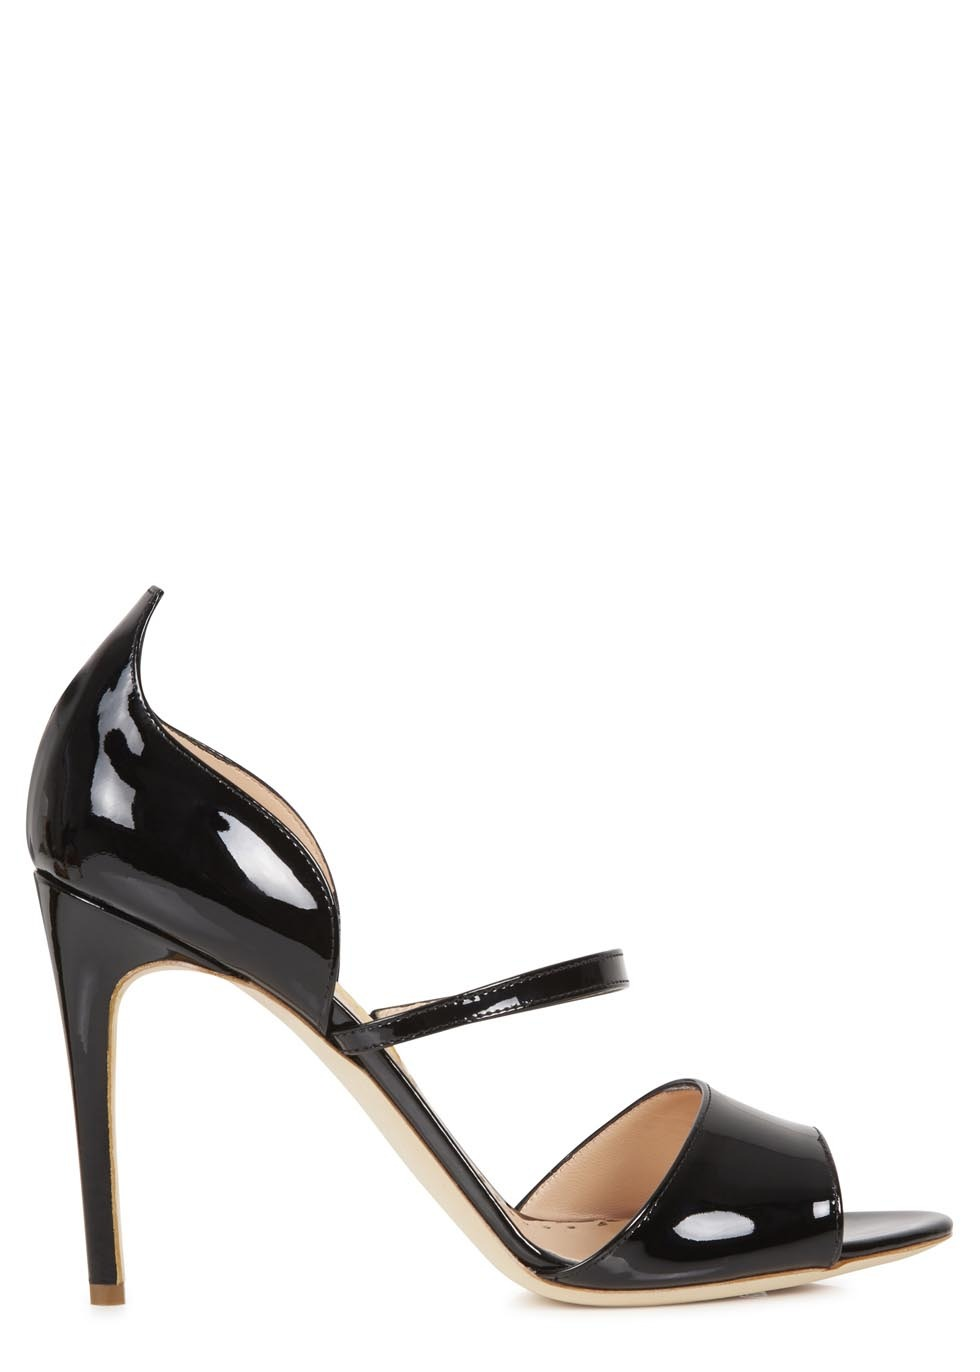 Black Patent Leather Sandals - predominant colour: black; occasions: evening, occasion, creative work; material: leather; heel: stiletto; toe: open toe/peeptoe; style: strappy; finish: patent; pattern: plain; heel height: very high; season: s/s 2014